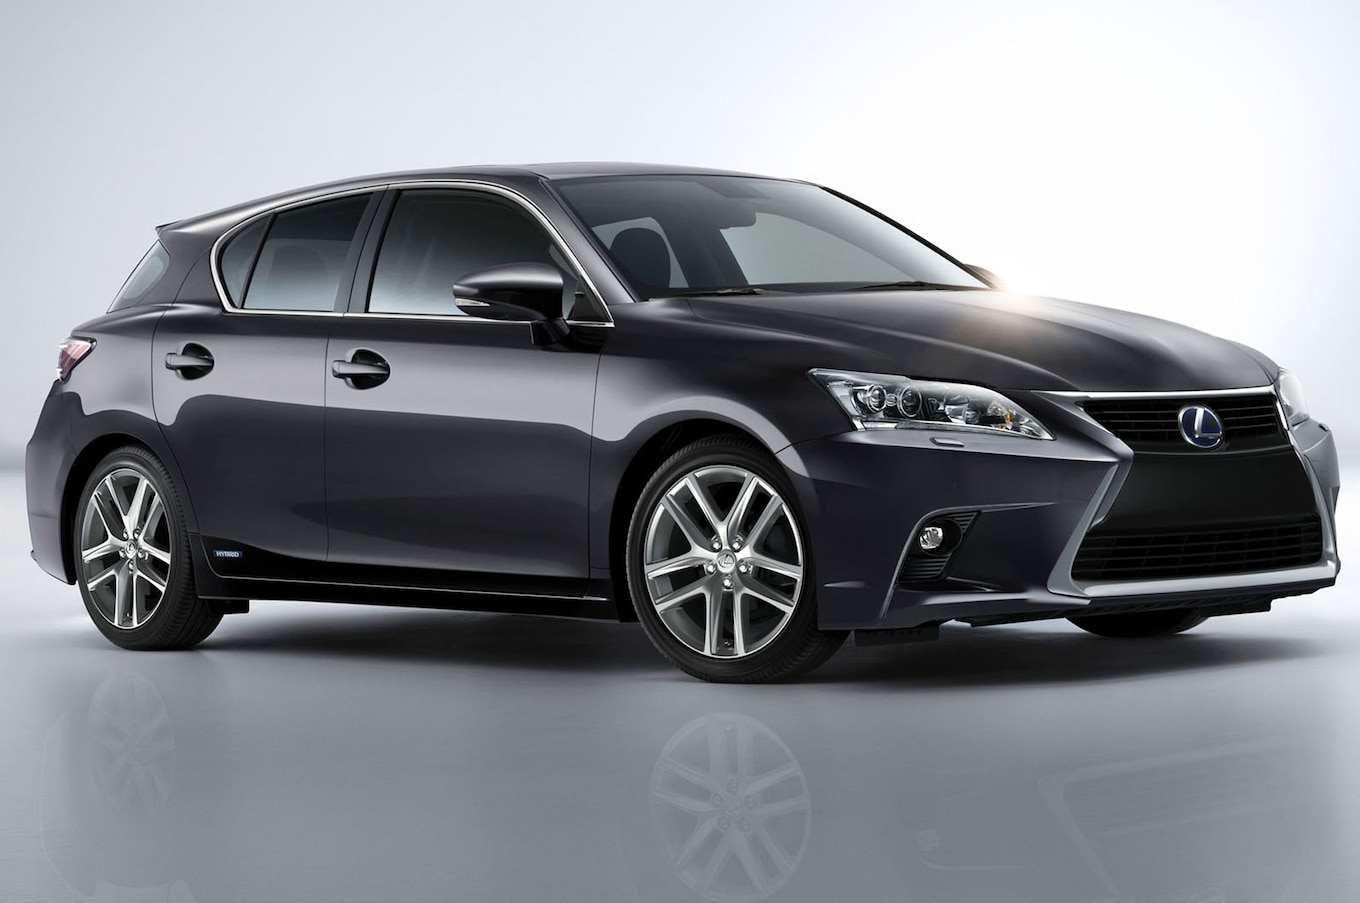 Refreshed 2014 Lexus CT 200h Priced at $32 960